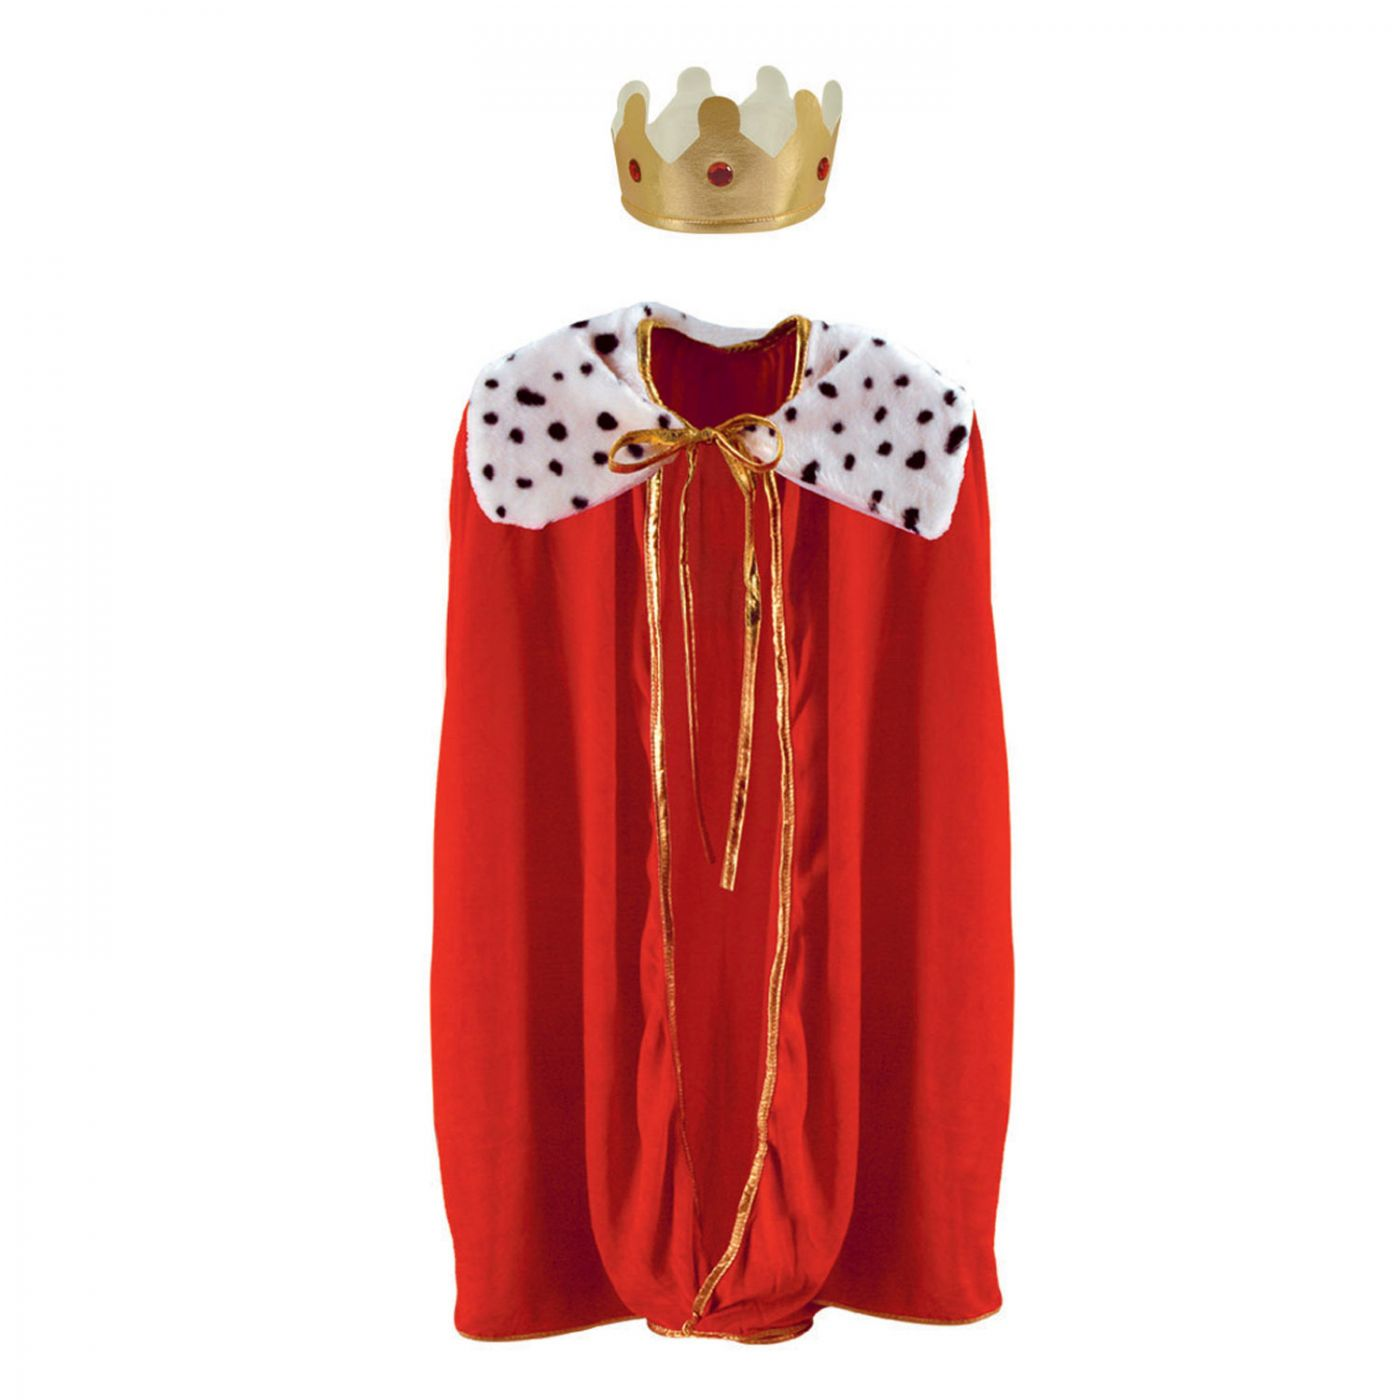 Child King/Queen Robe w/Crown (1) image